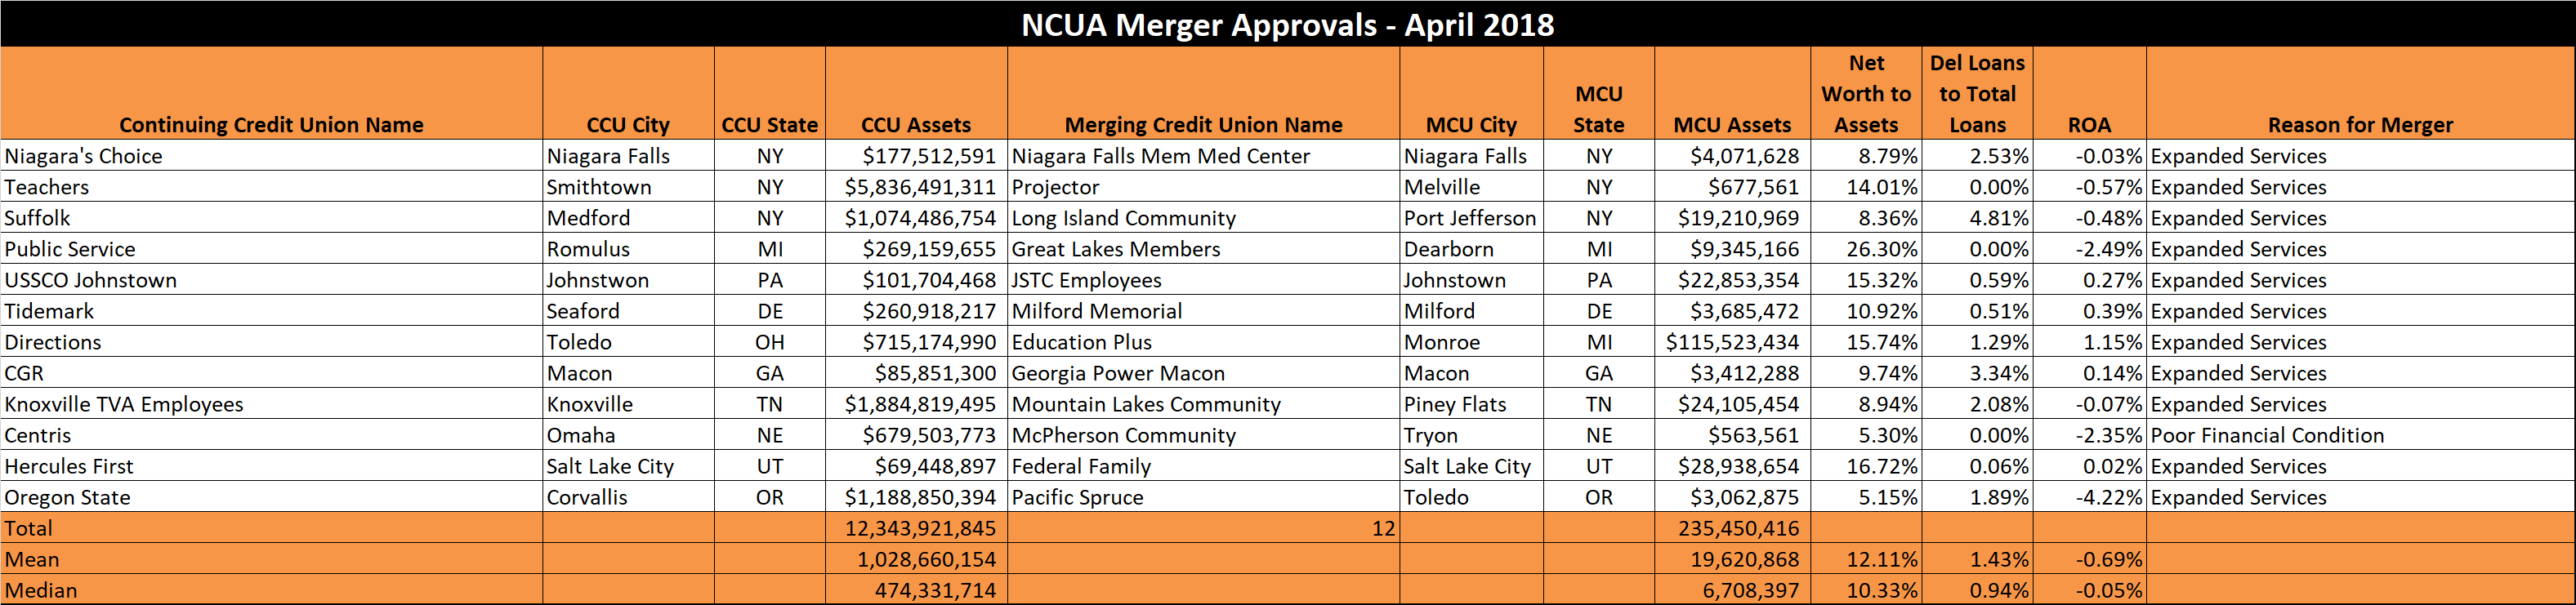 NCUA Merger Approvals - April 2018